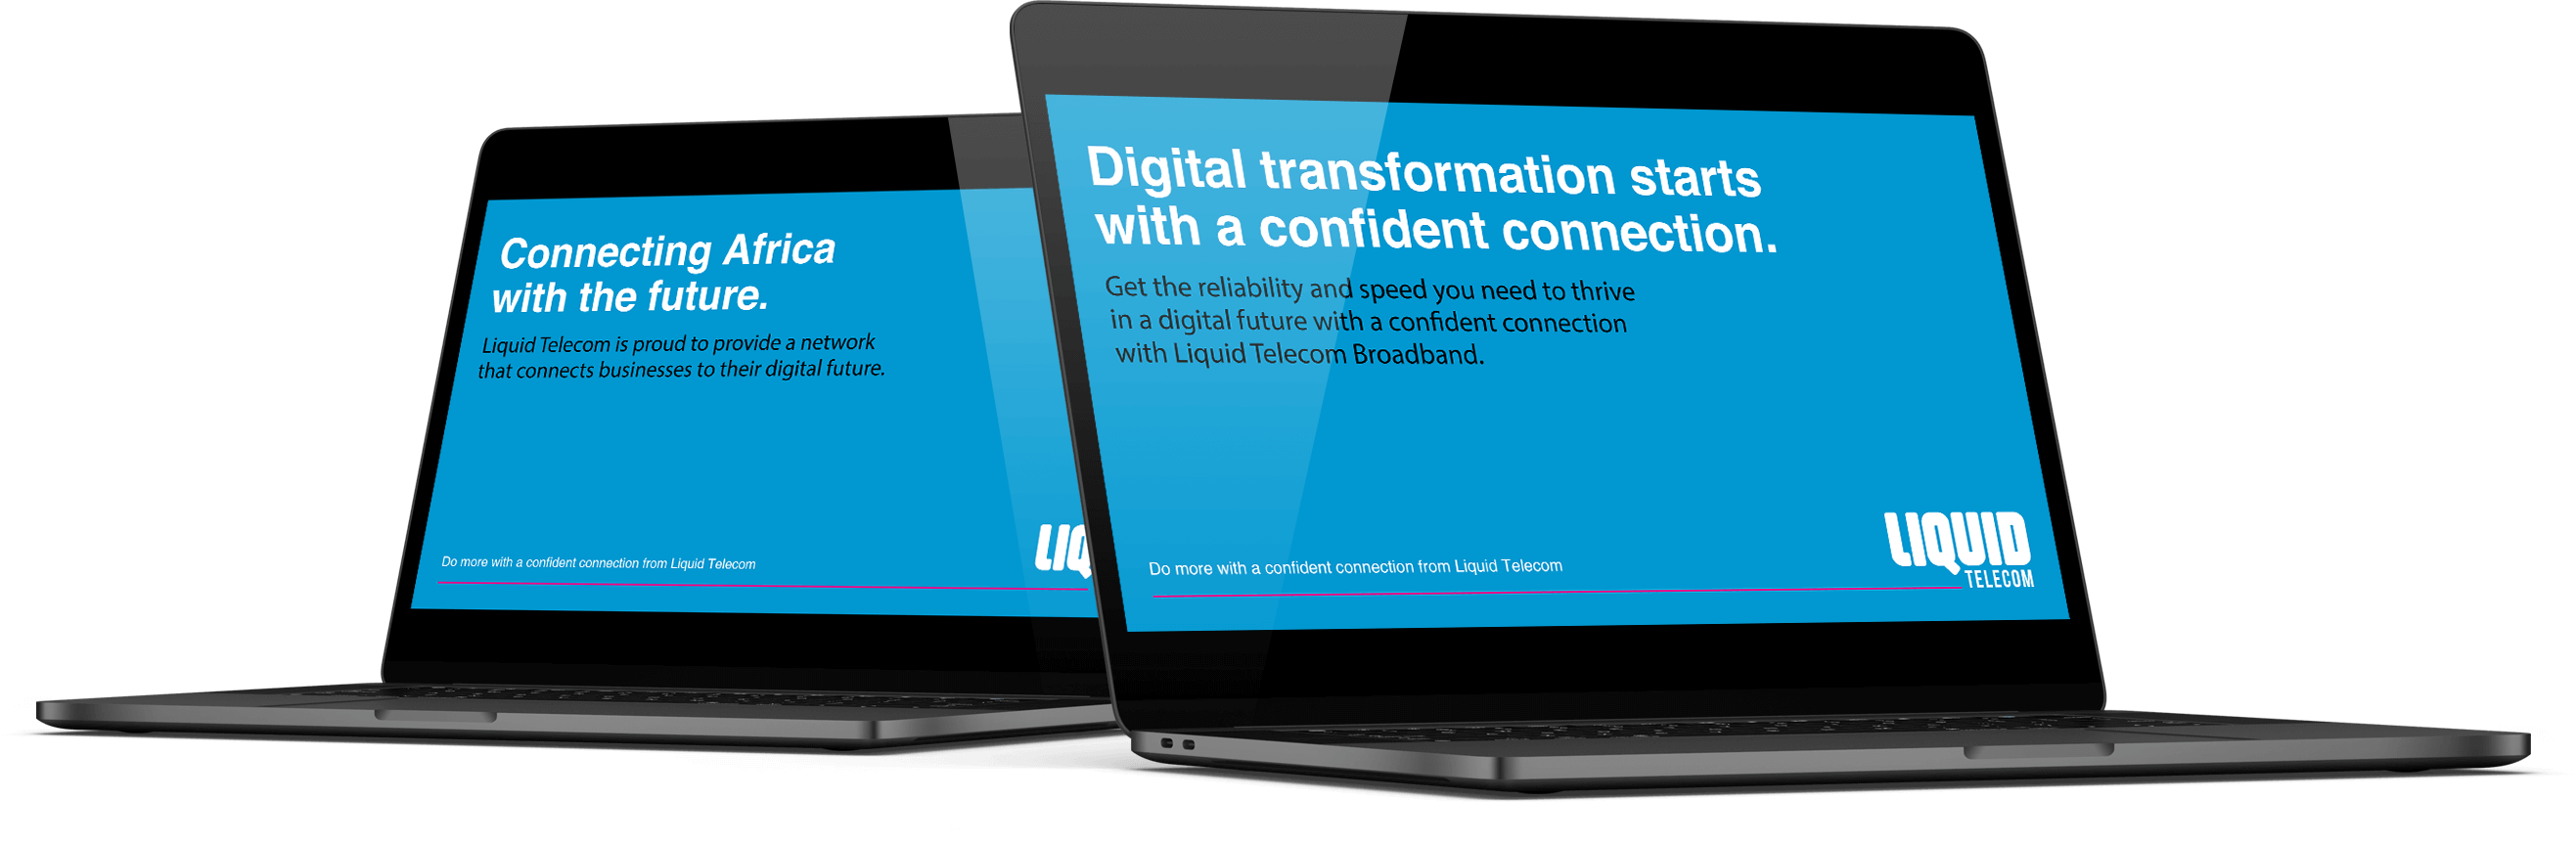 Digital Kungfu - Liquid Telecom Broadband Case Study